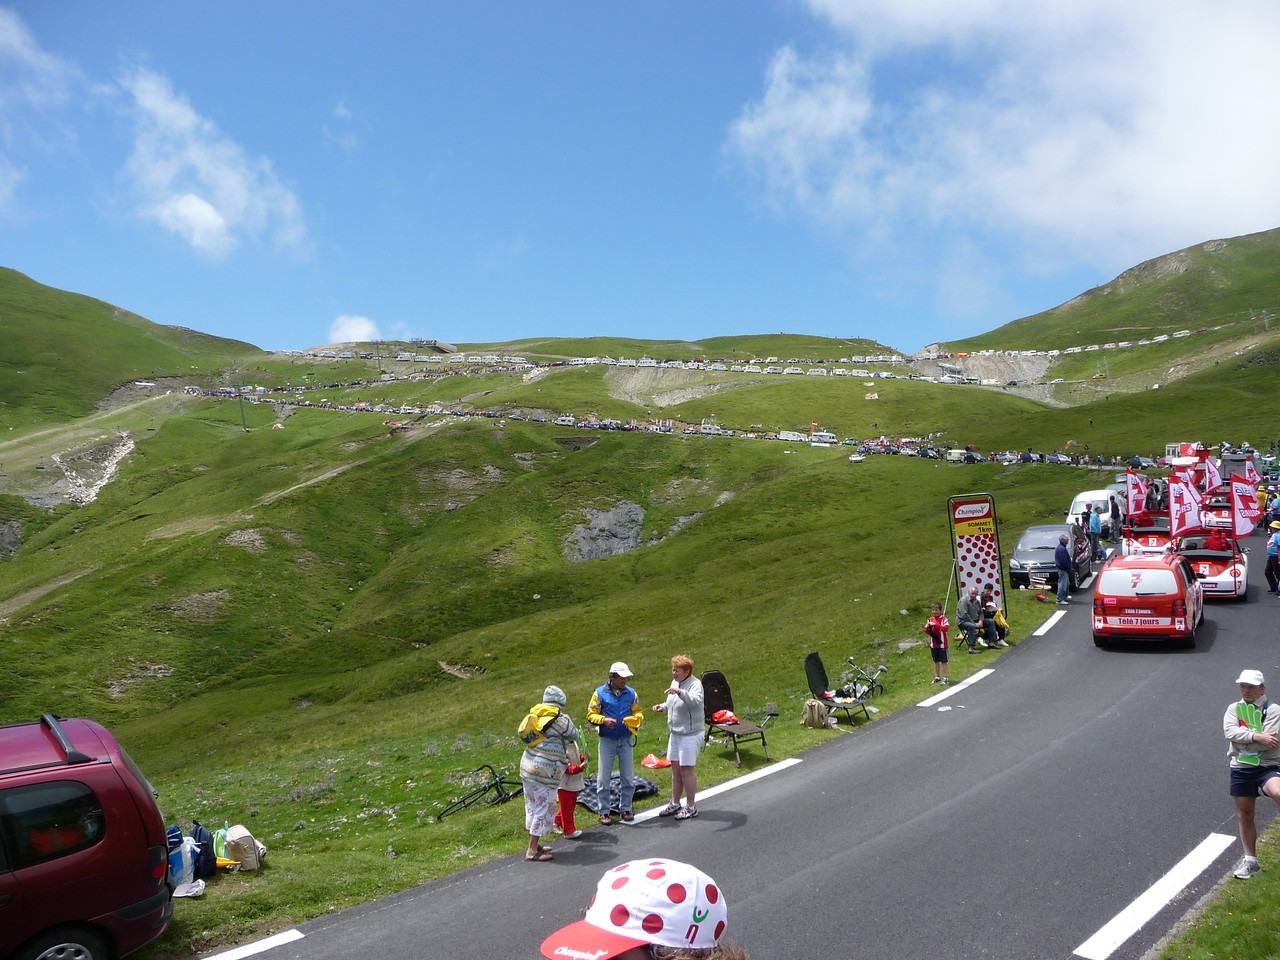 Location - Col du Tourmalet